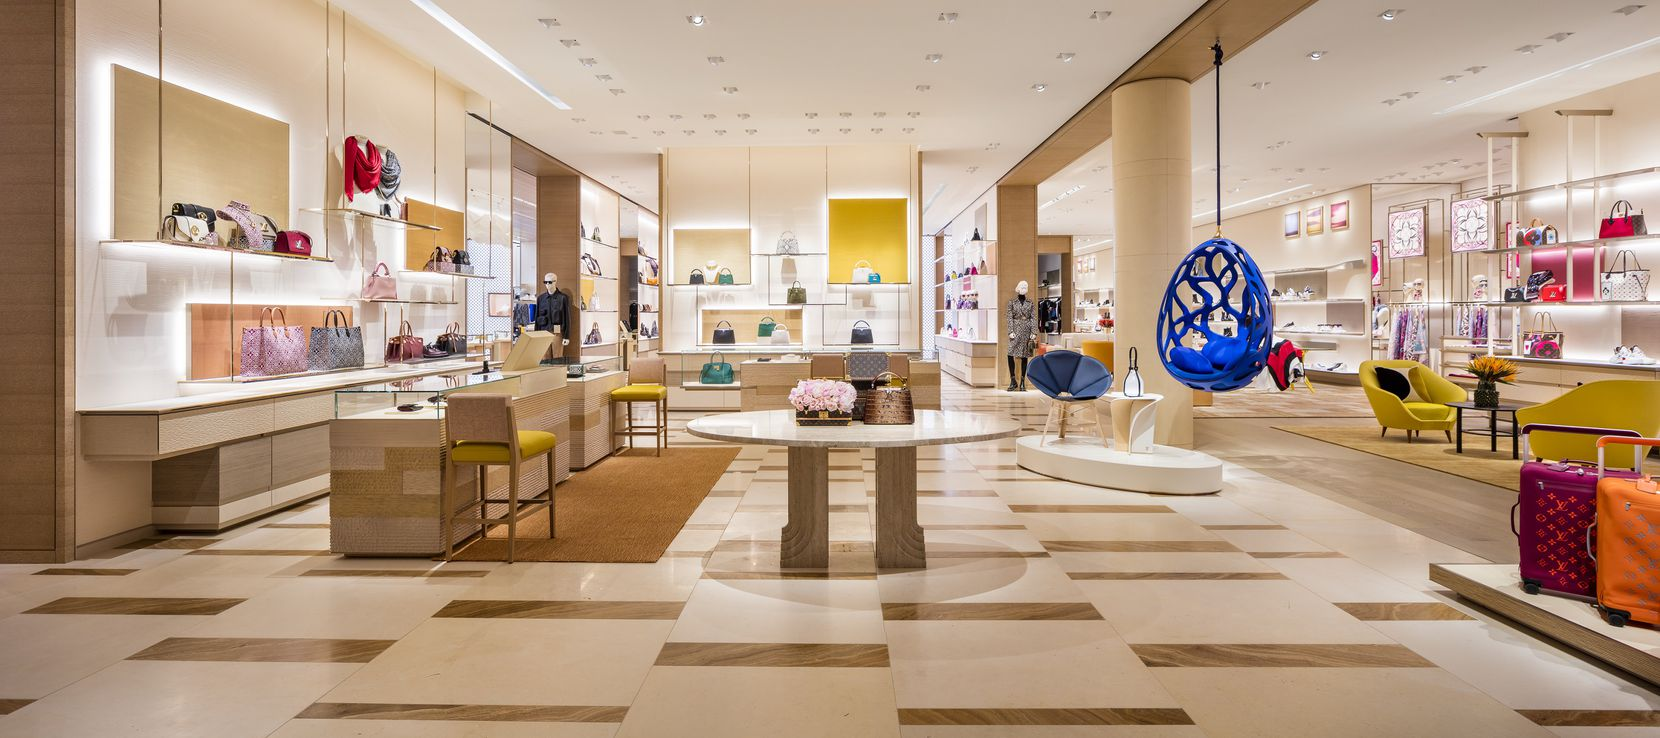 A Louis Vuitton store that's twice as big as the old one opens at NorthPark Center on Saturday, Nov. 14. The store has added furniture for sale.